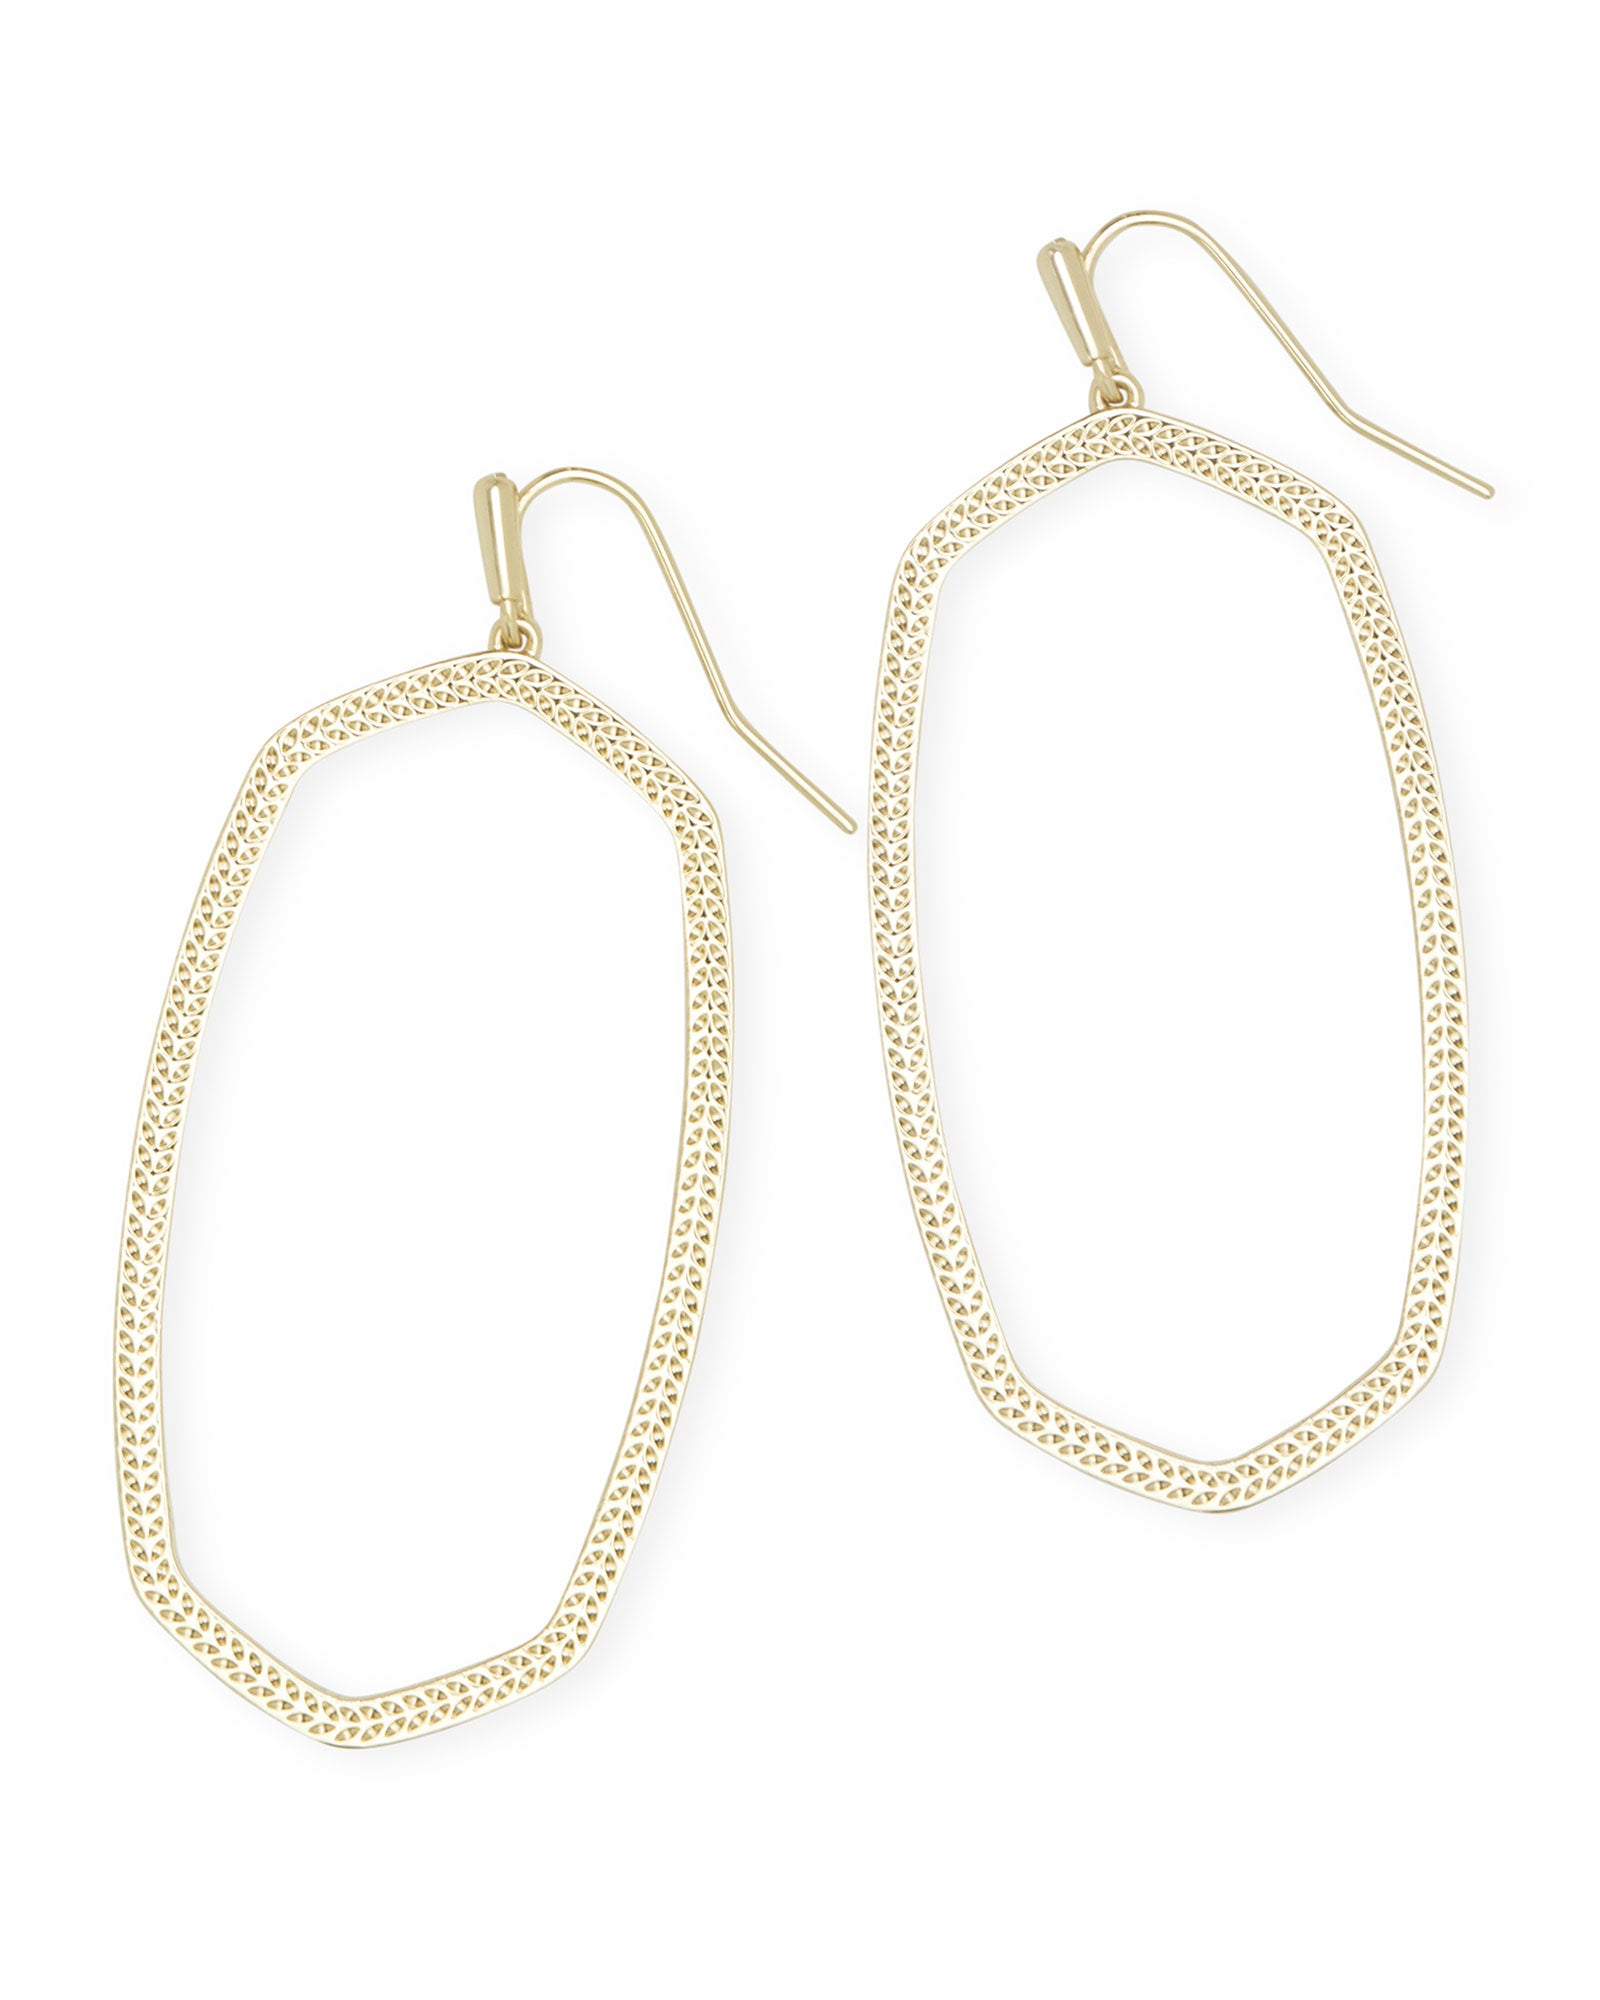 Danielle Open Frame Earring in Gold